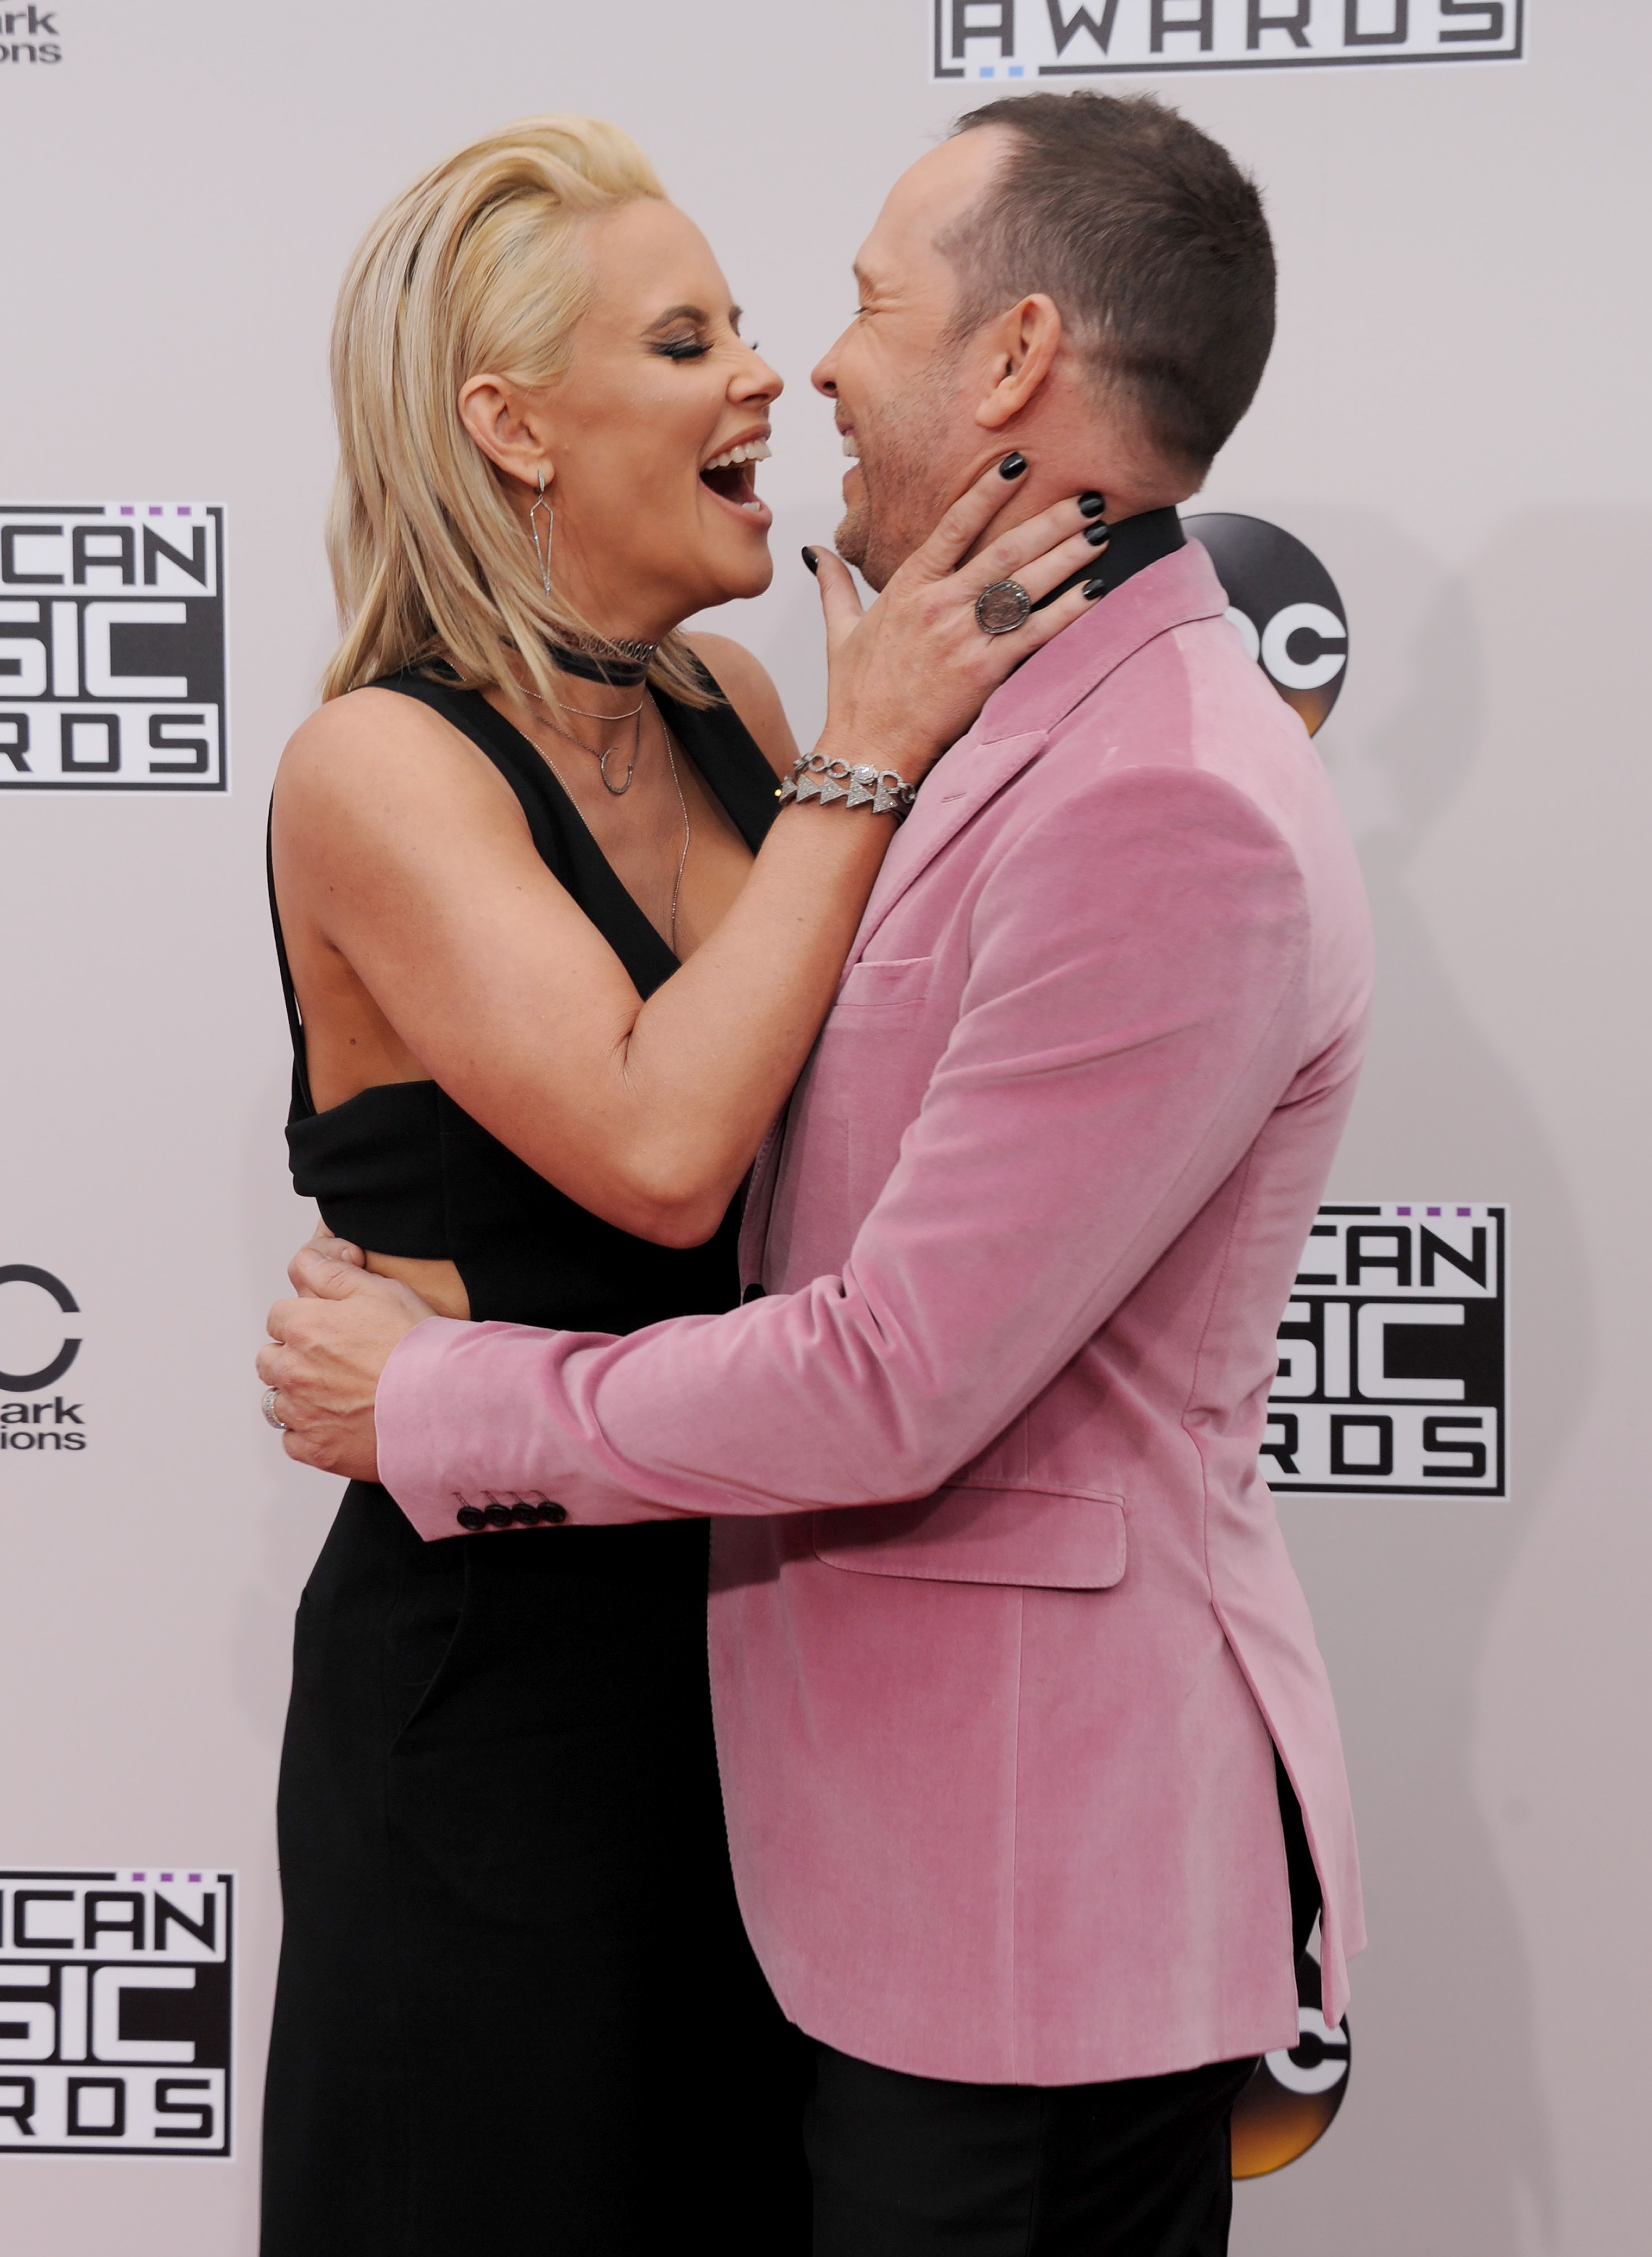 Donnie Wahlberg Planned the Most Outrageous Date for His Wife Jenny McCarthy